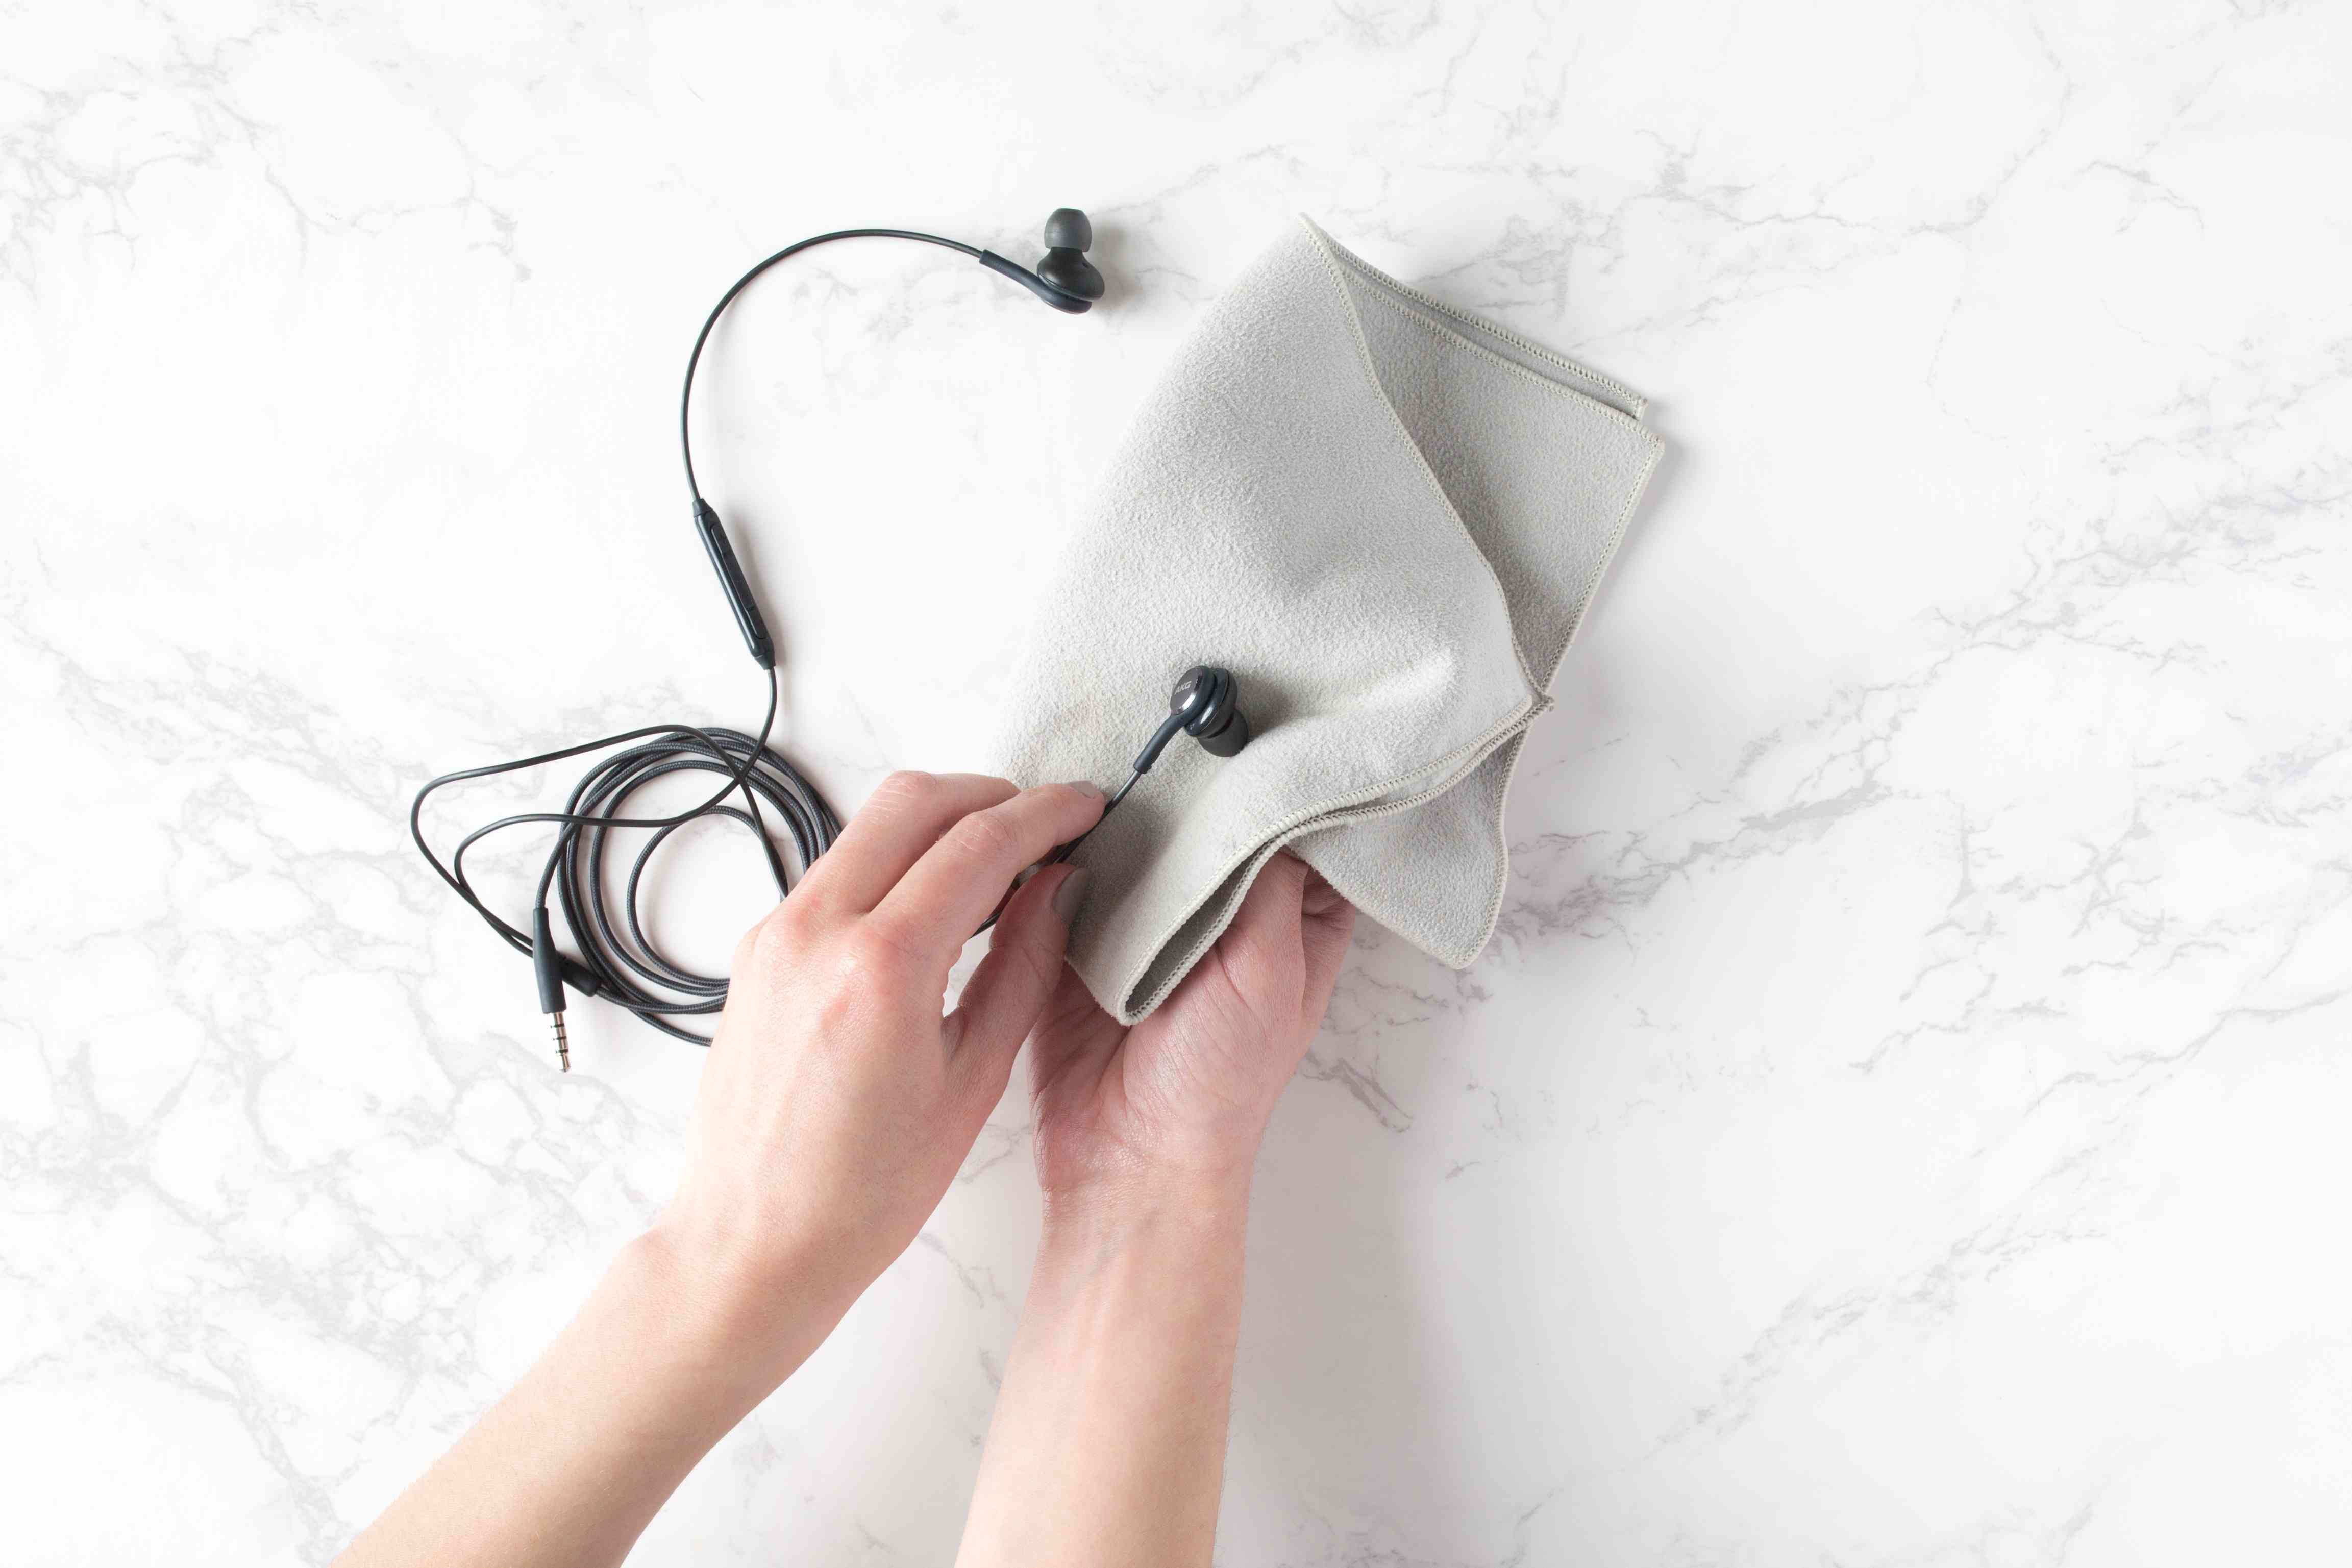 clean cell phone accessories with a microfiber cloth